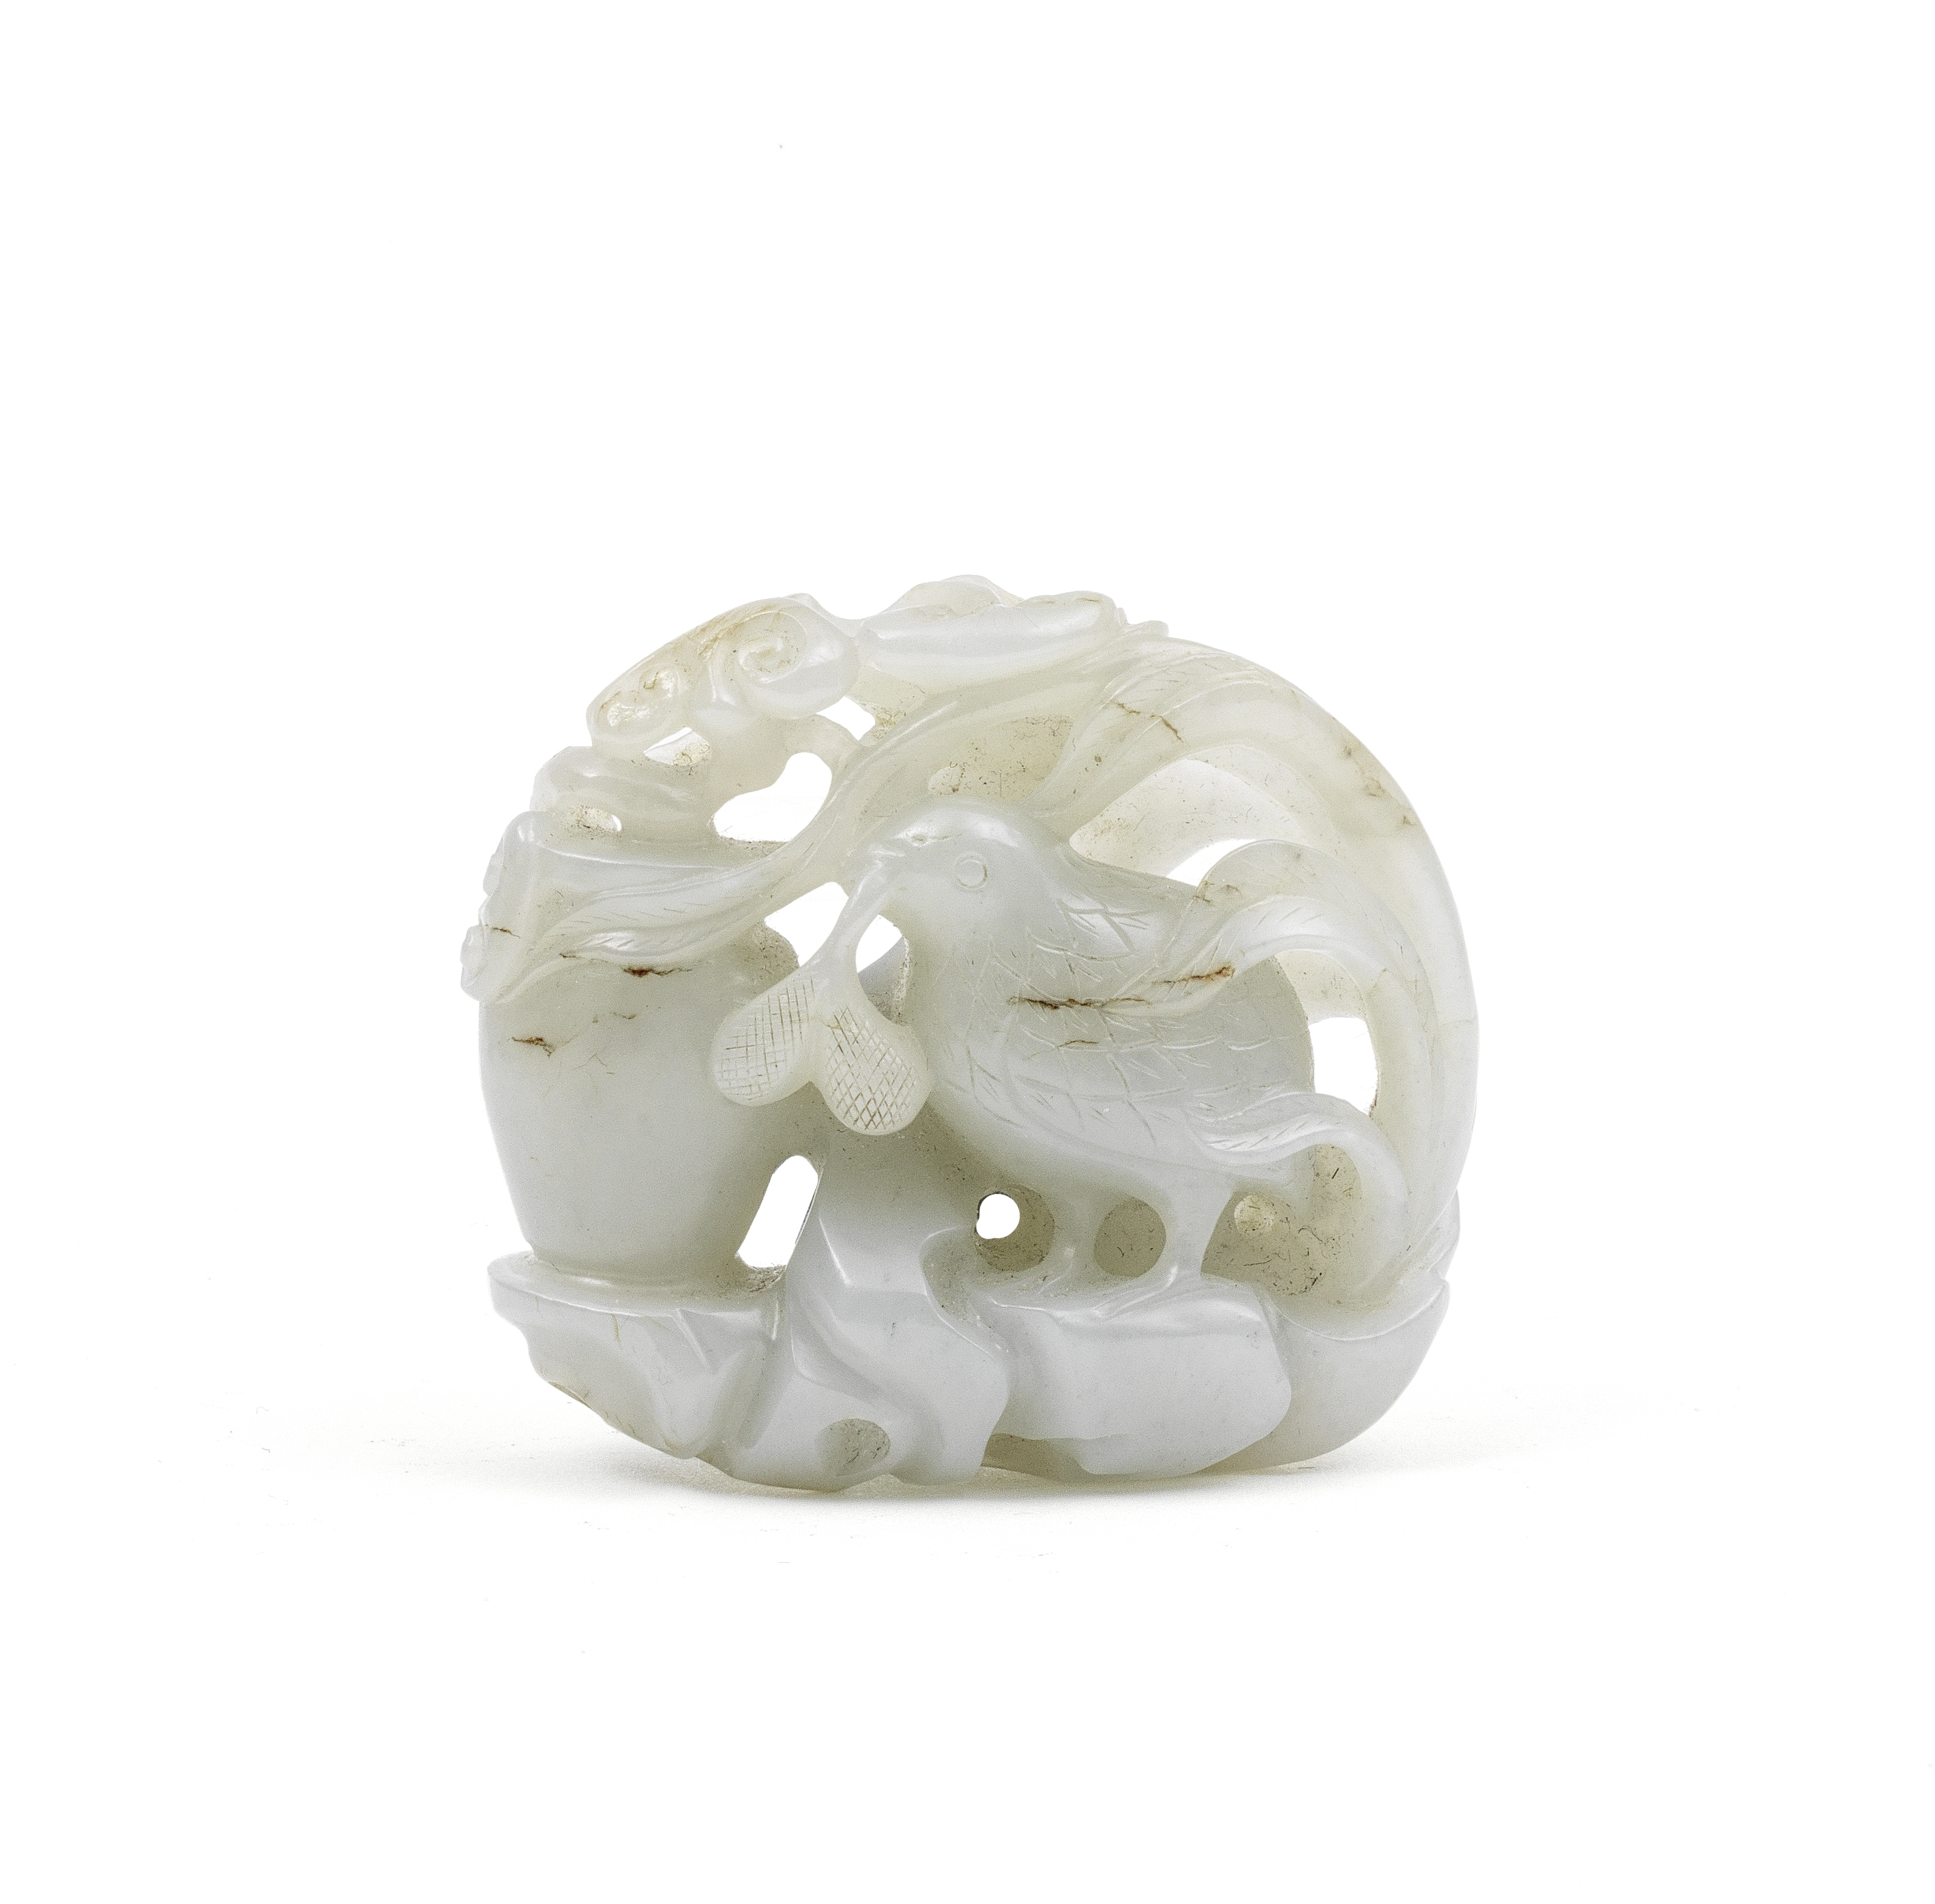 A RETICULATED WHITE JADE 'QUAIL' GROUP Qing Dynasty